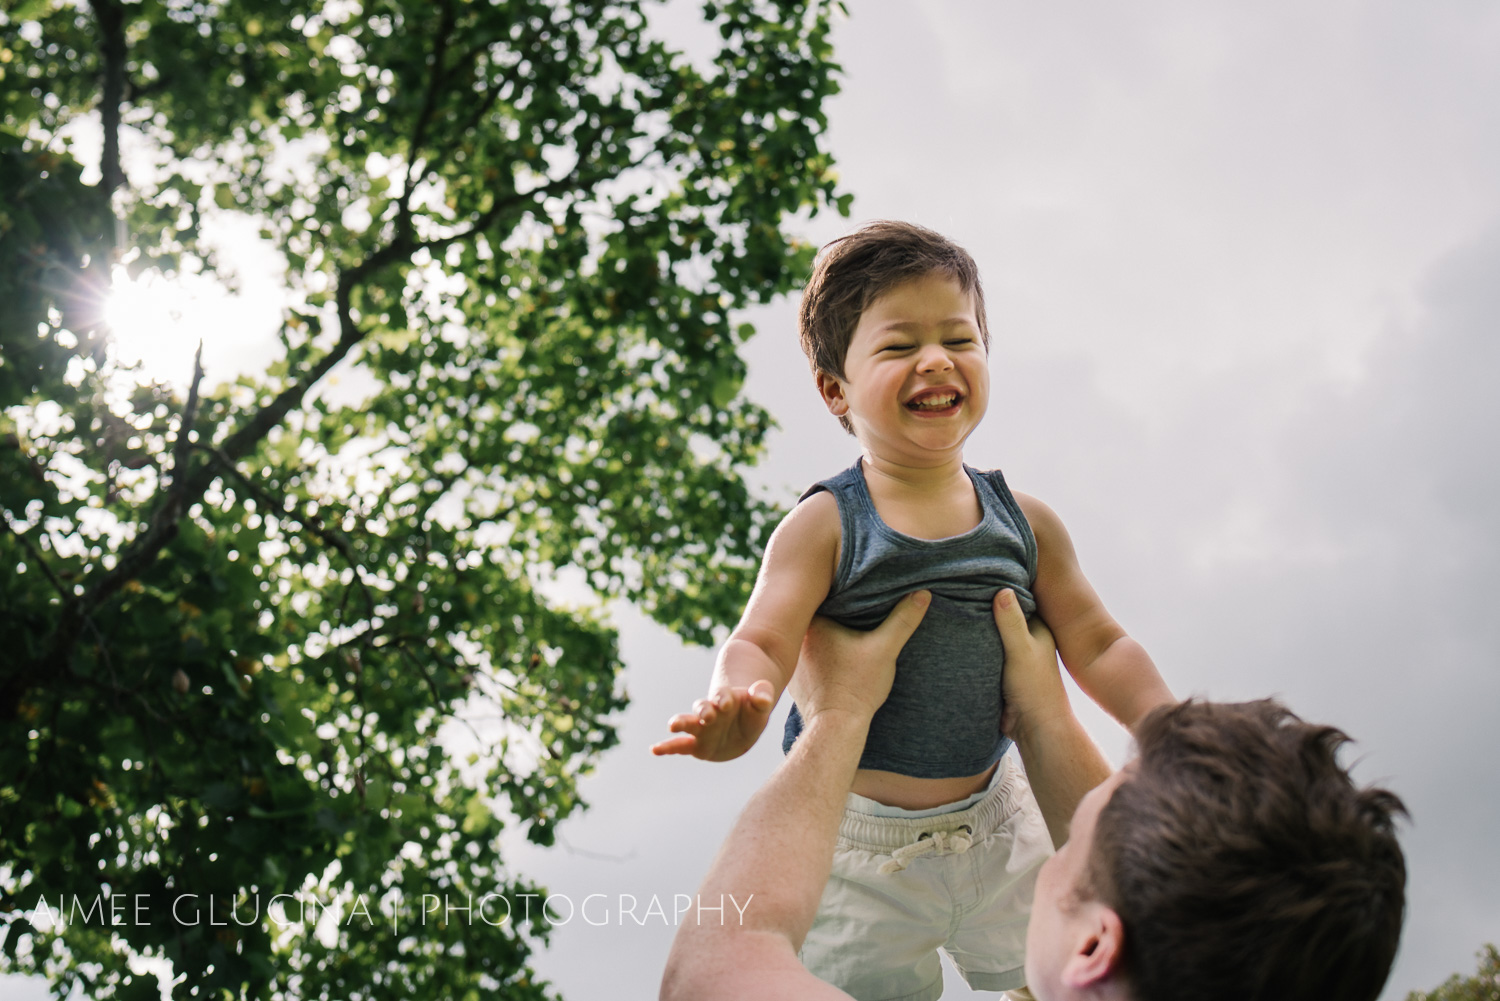 Marks Family Session by Aimee Glucina Photography-12.jpg